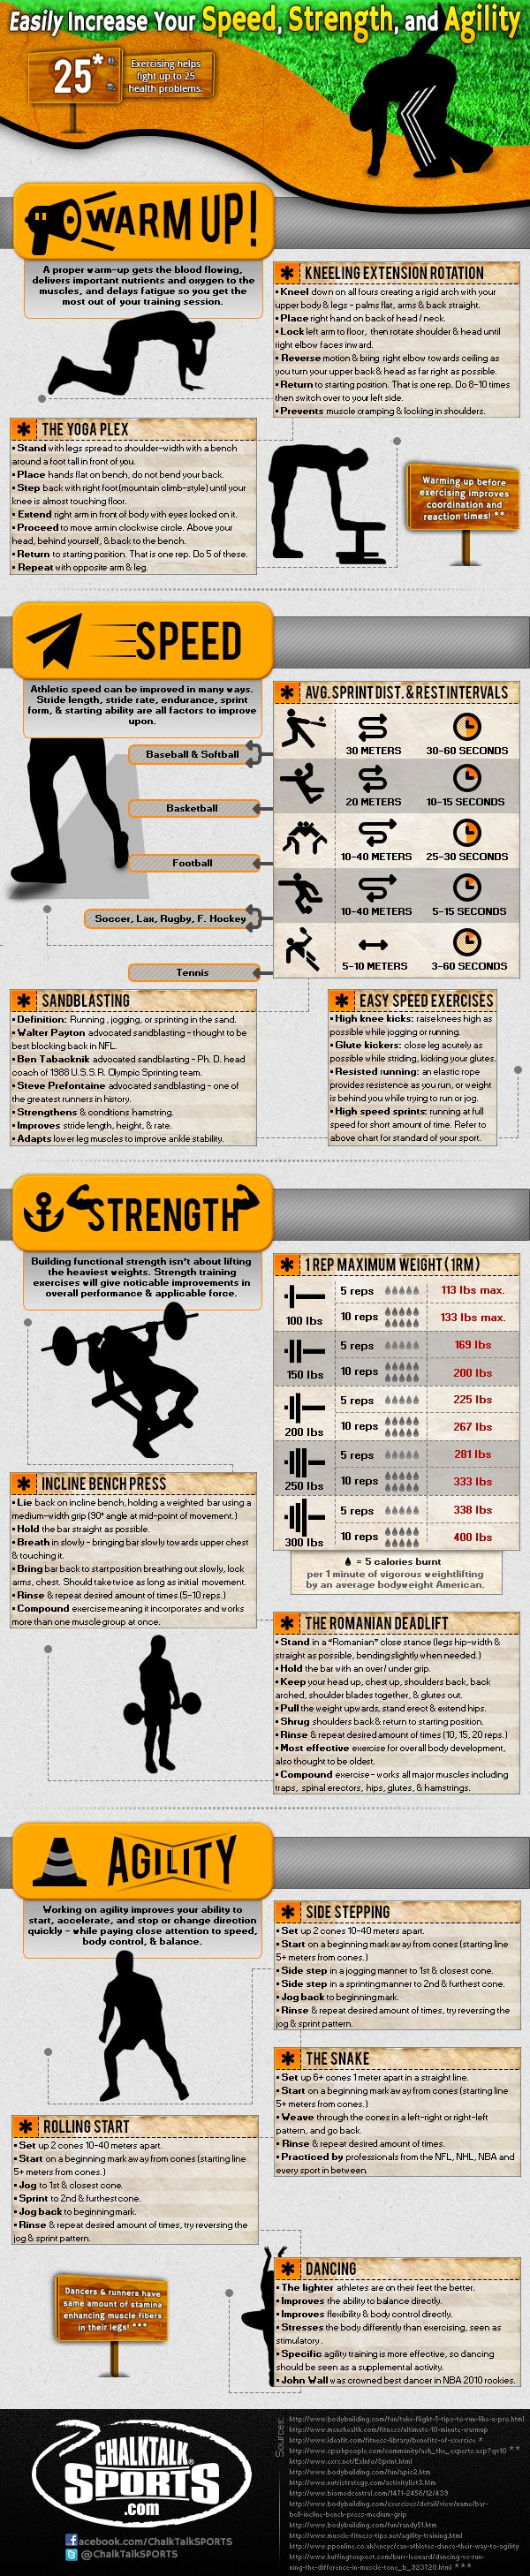 Easily Increase Your Speed, Strength and Agility [INFOGRAPHIC]